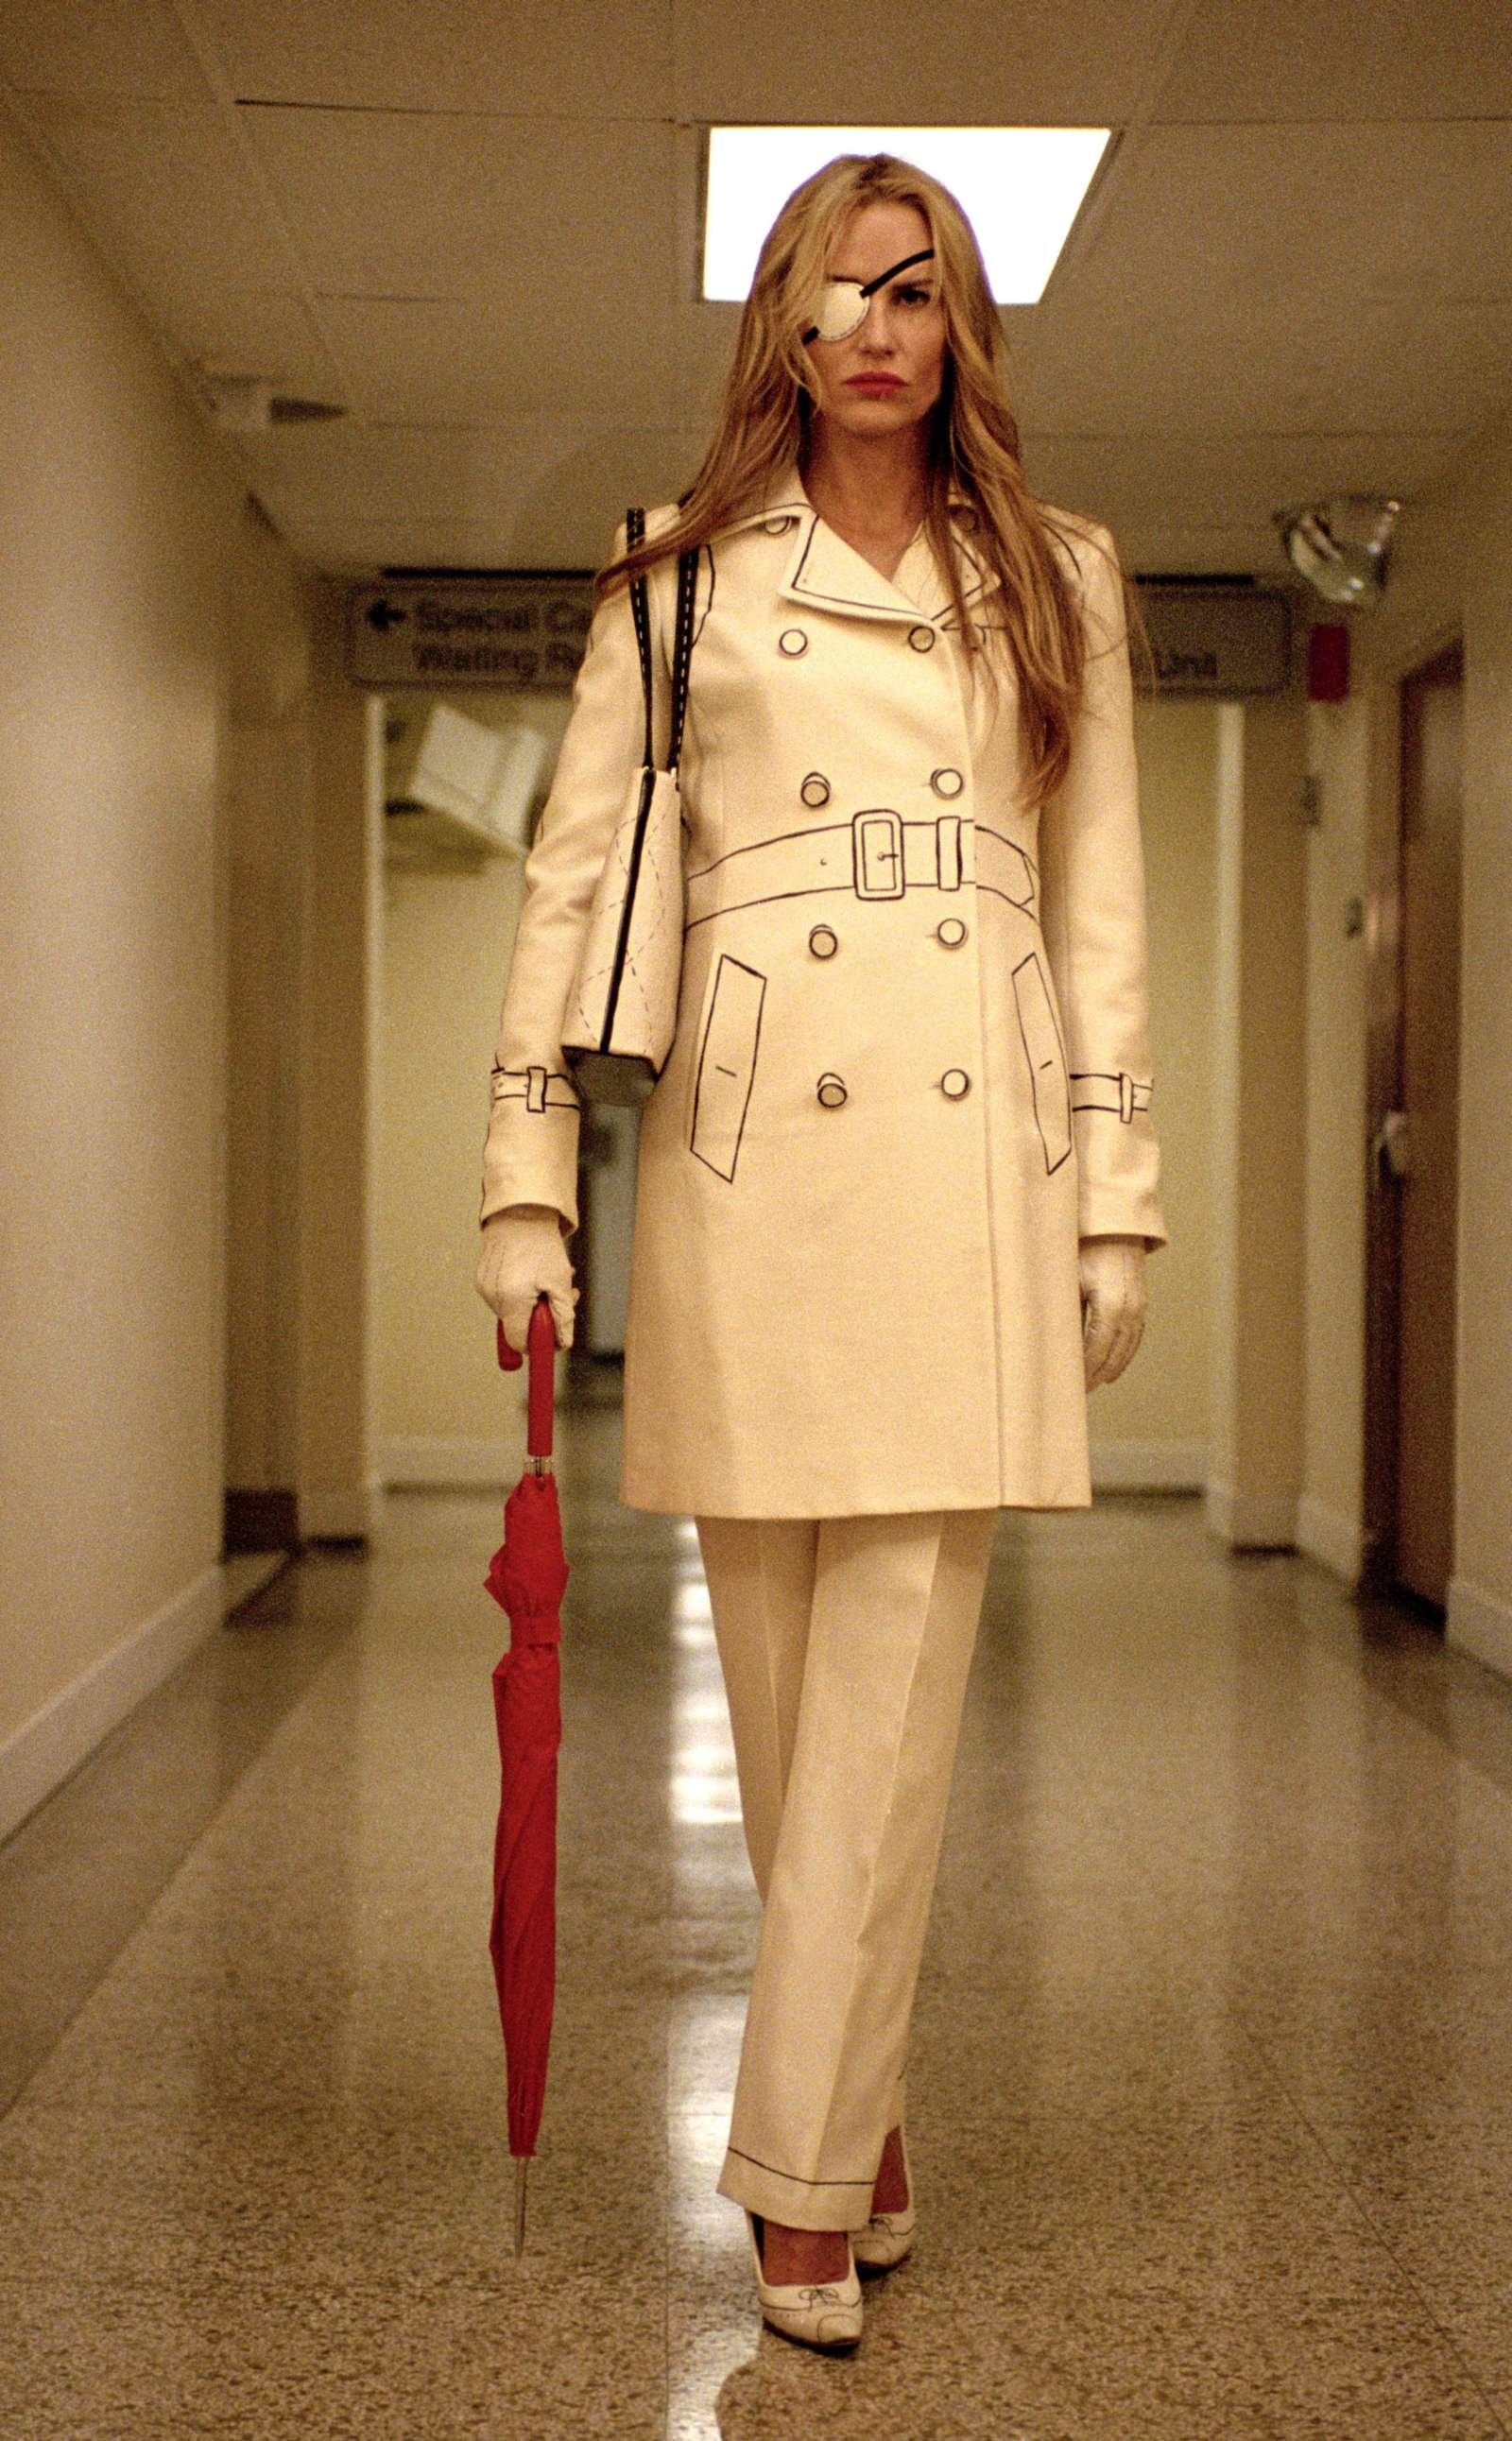 Daryl Hannah as Elle Driver in Kill Bill: Volume 1, 2003, and Kill Bill: Volume 2, 2004.